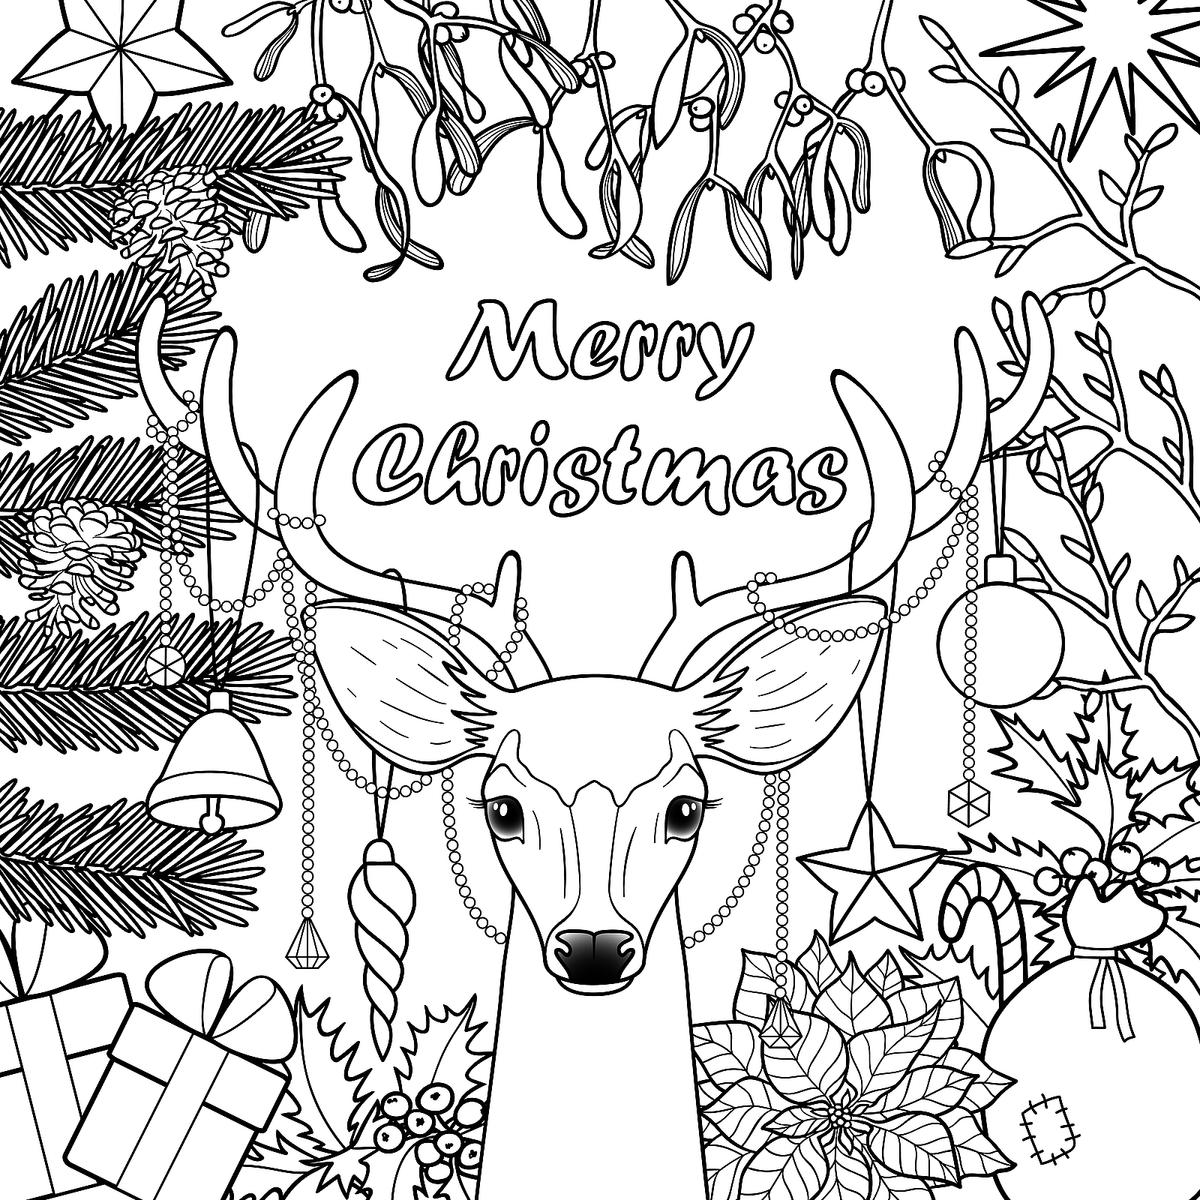 ho iday coloring pages - photo#42